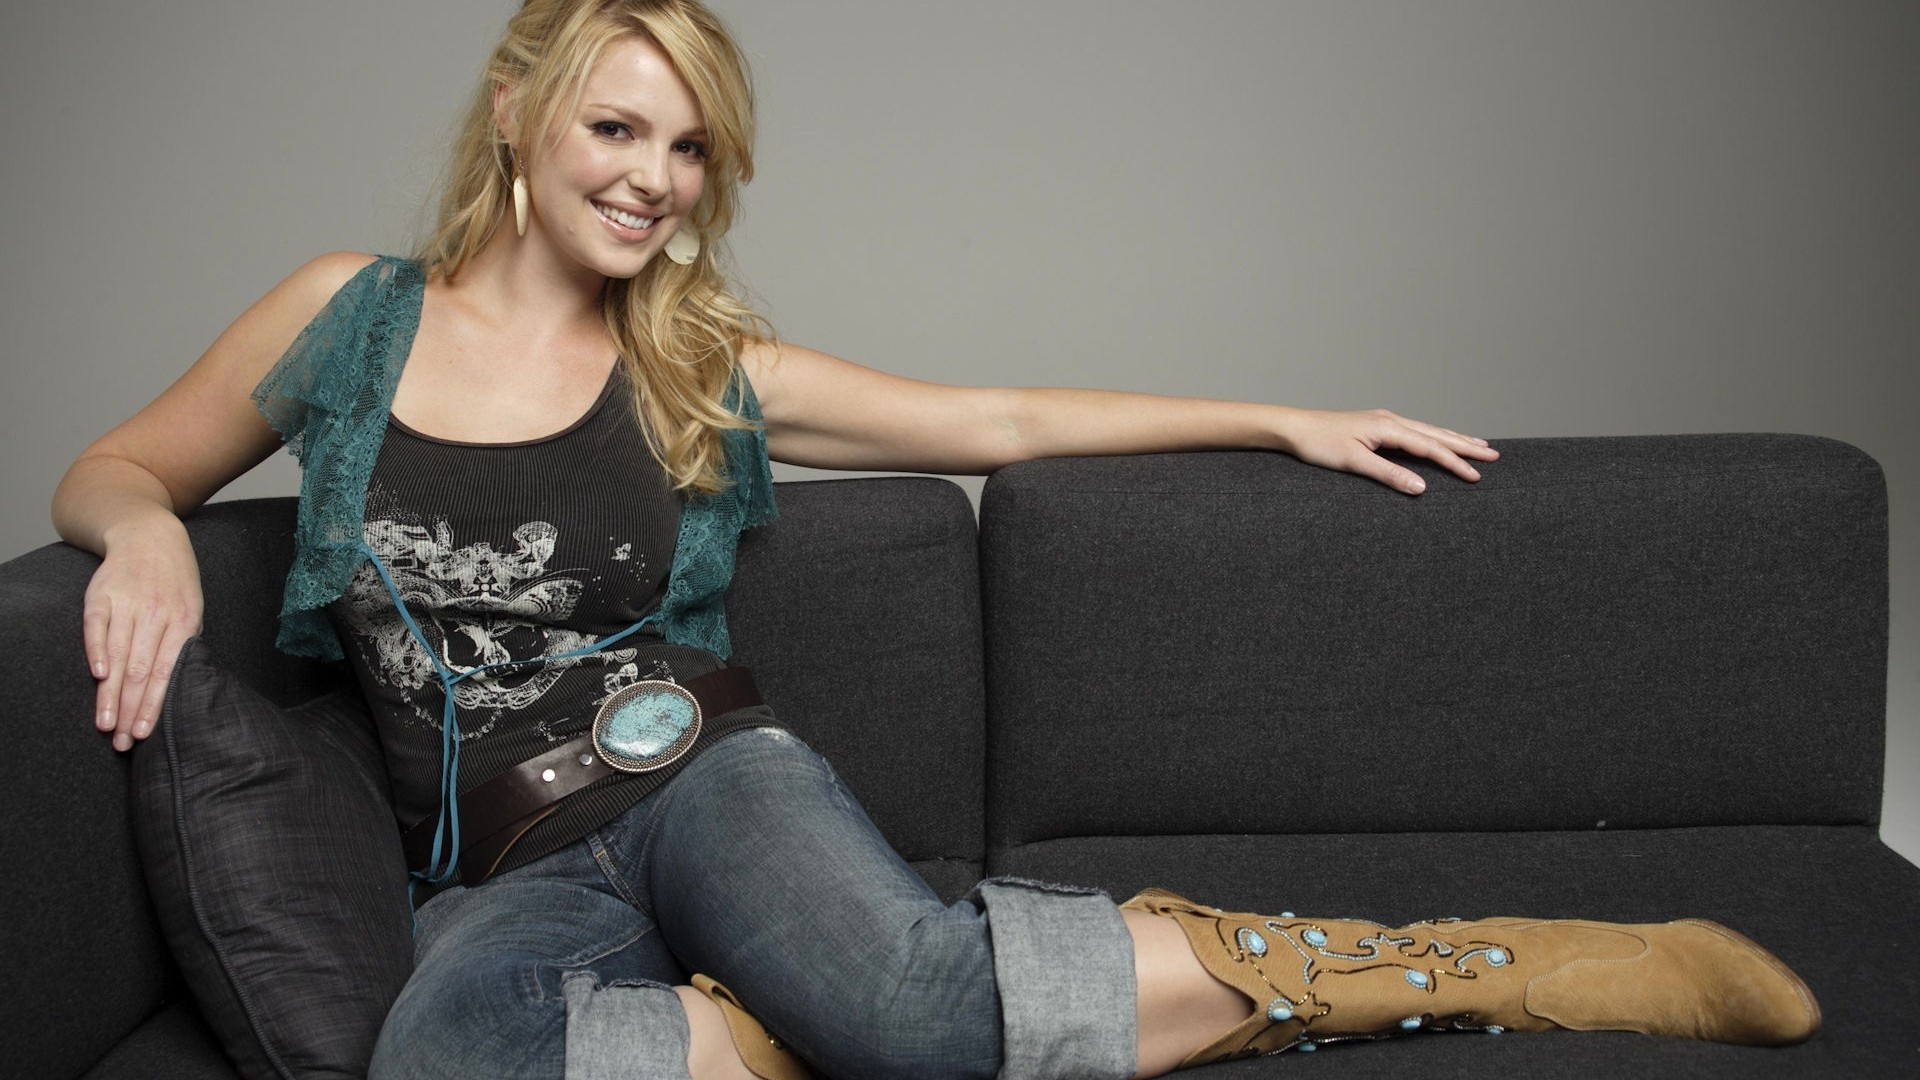 Res: 1920x1080, People  Katherine Heigl women blonde jeans cowboy boots couch  actress